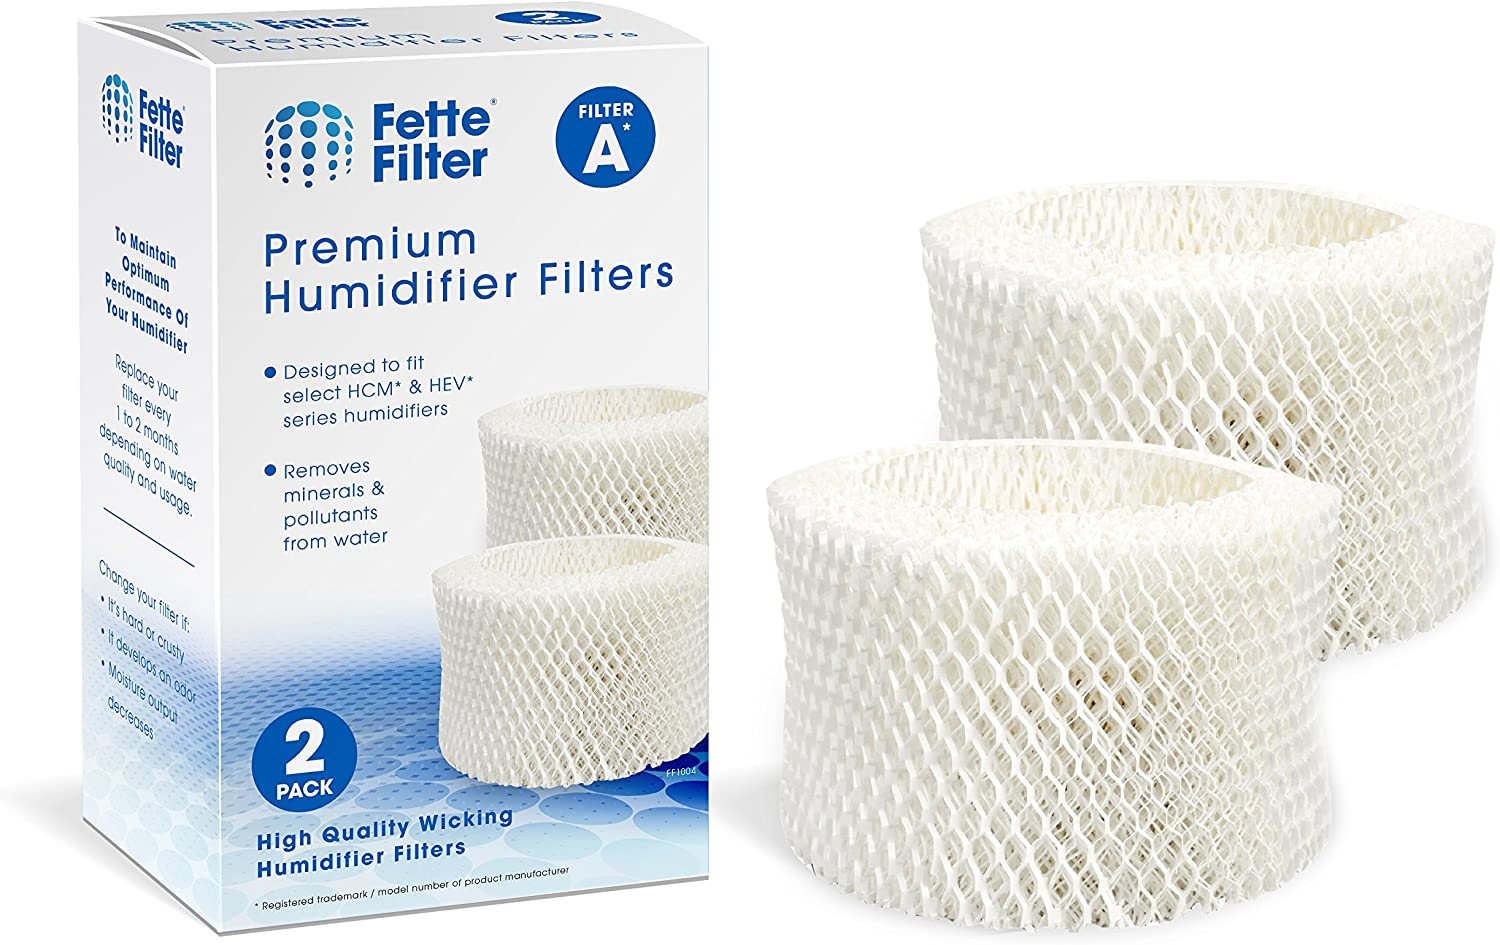 Fette Filter - Humidifier Wicking Filters Compatible with Honeywell HAC-504AW, Filter A for Models HAC-504, HAC-504AW, HCM 350 and Other Cool Mist Models (Pack of 2)